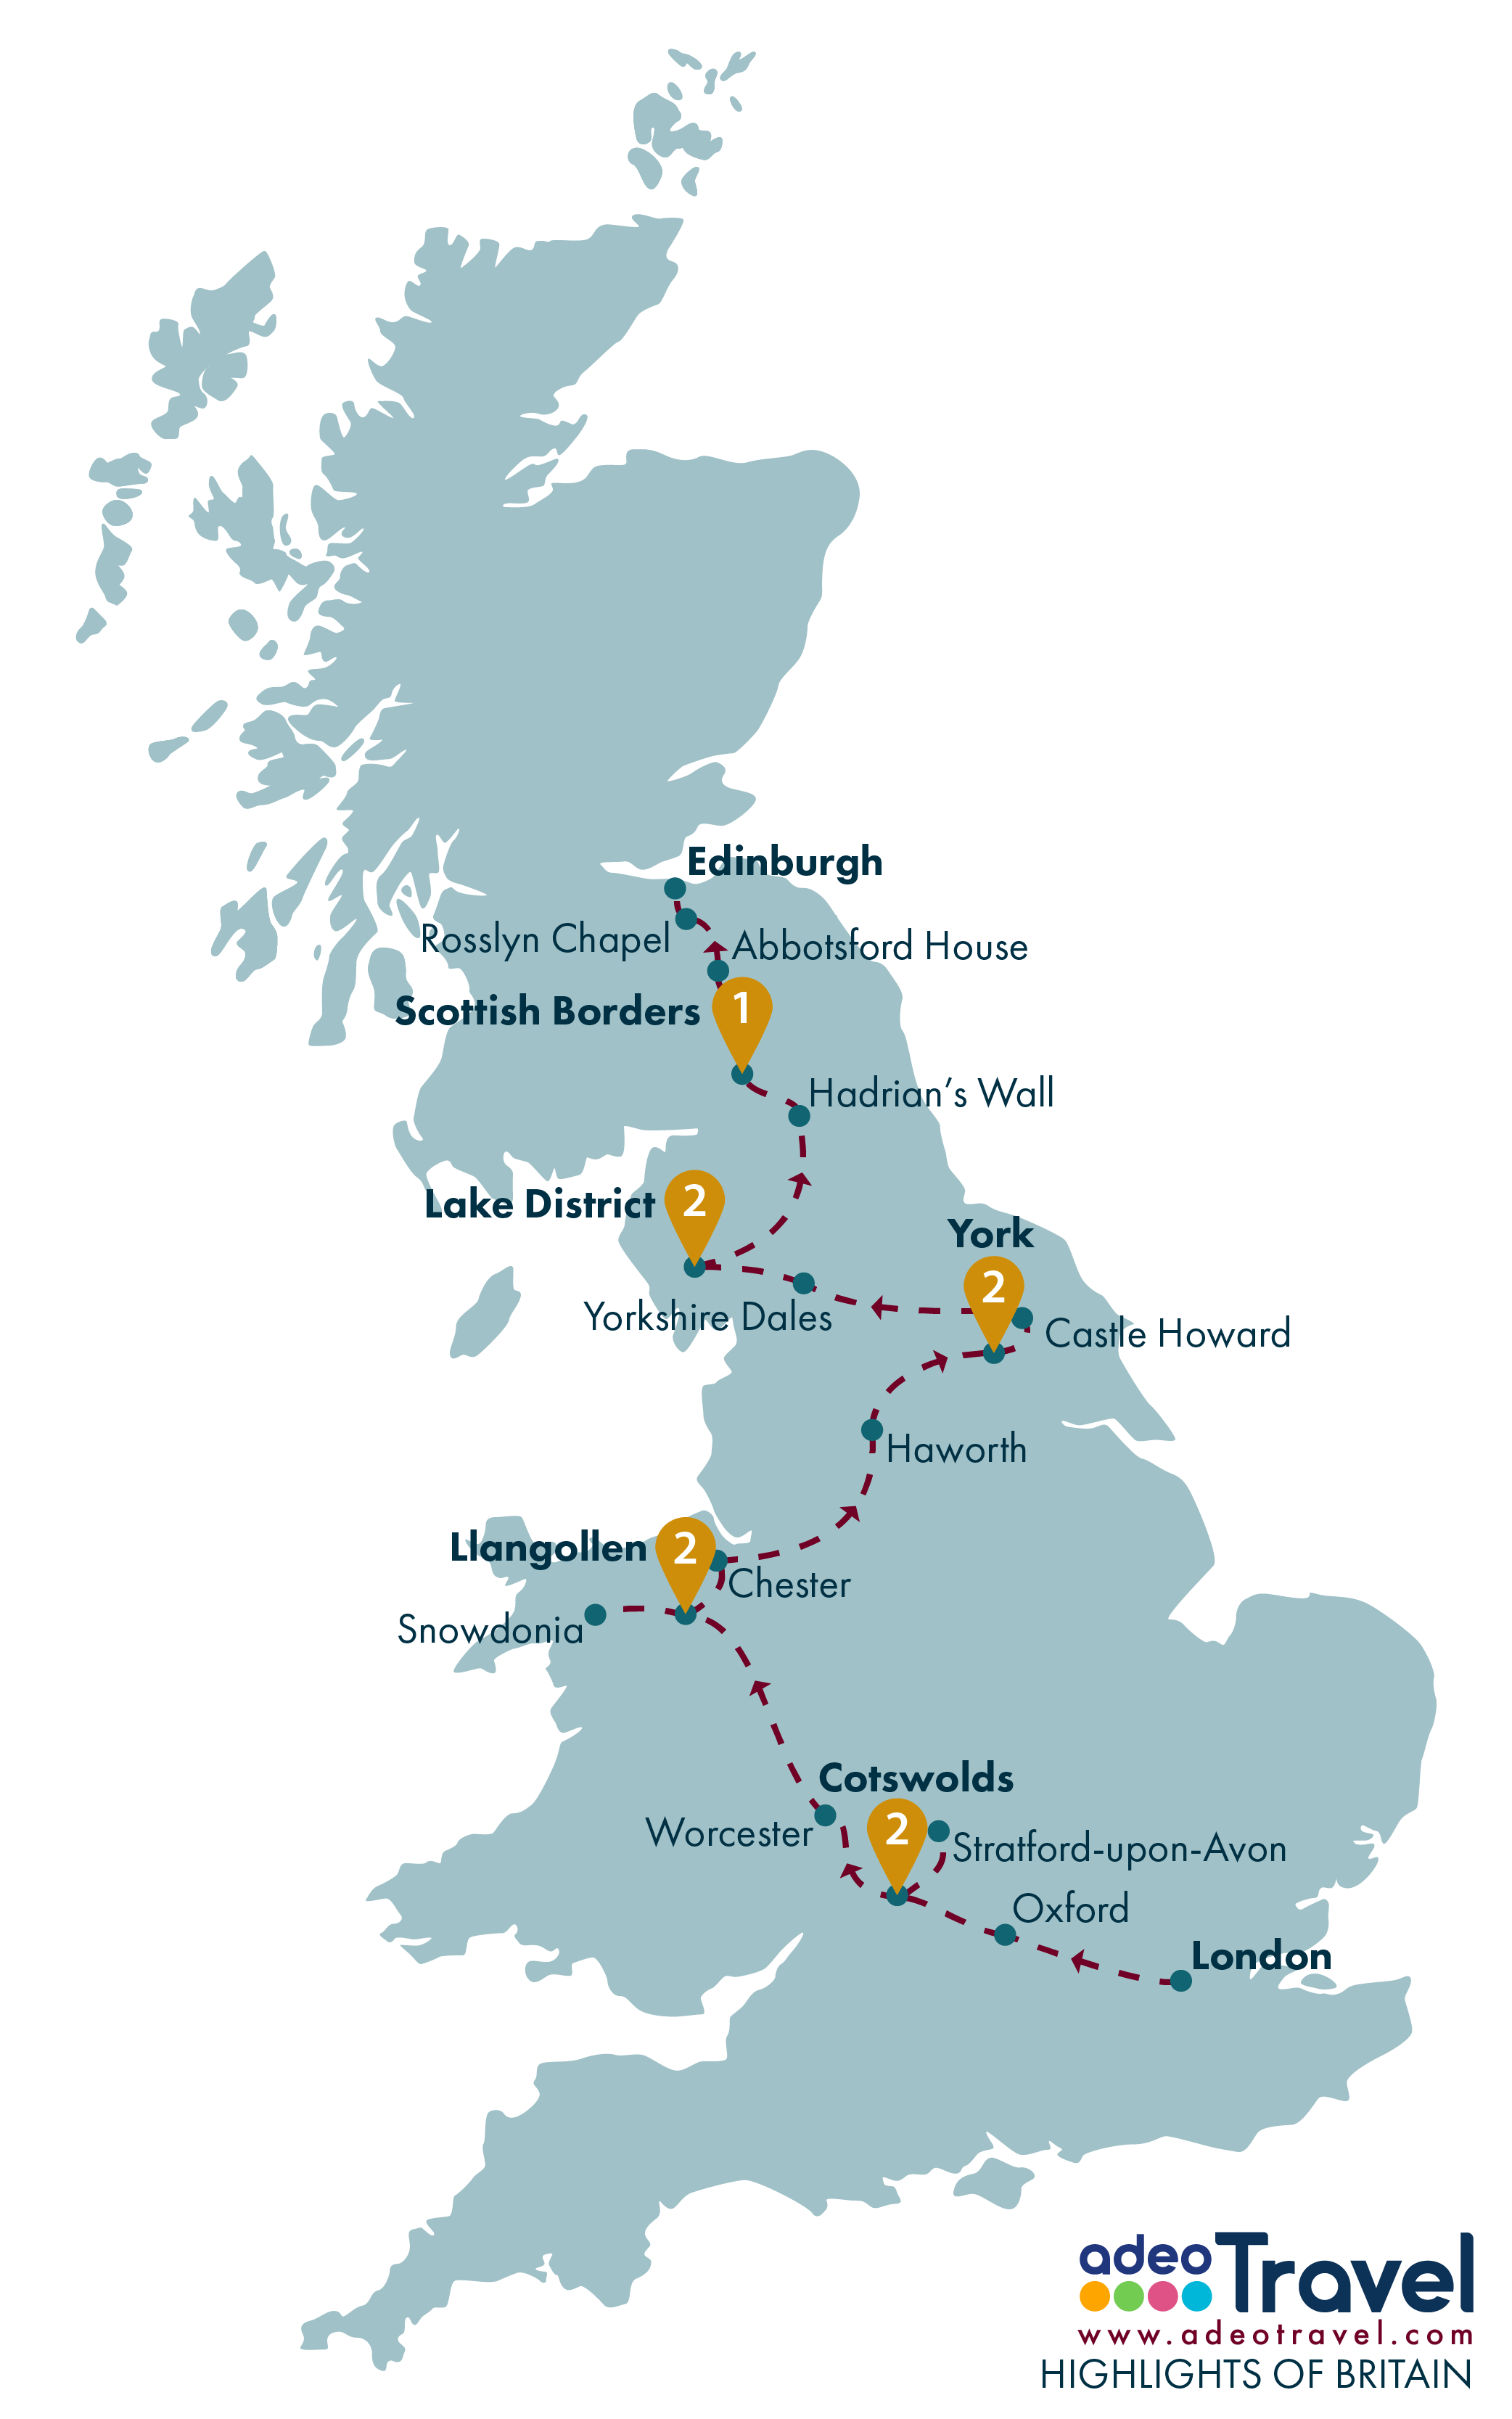 Tour Map - Highlights of Britain